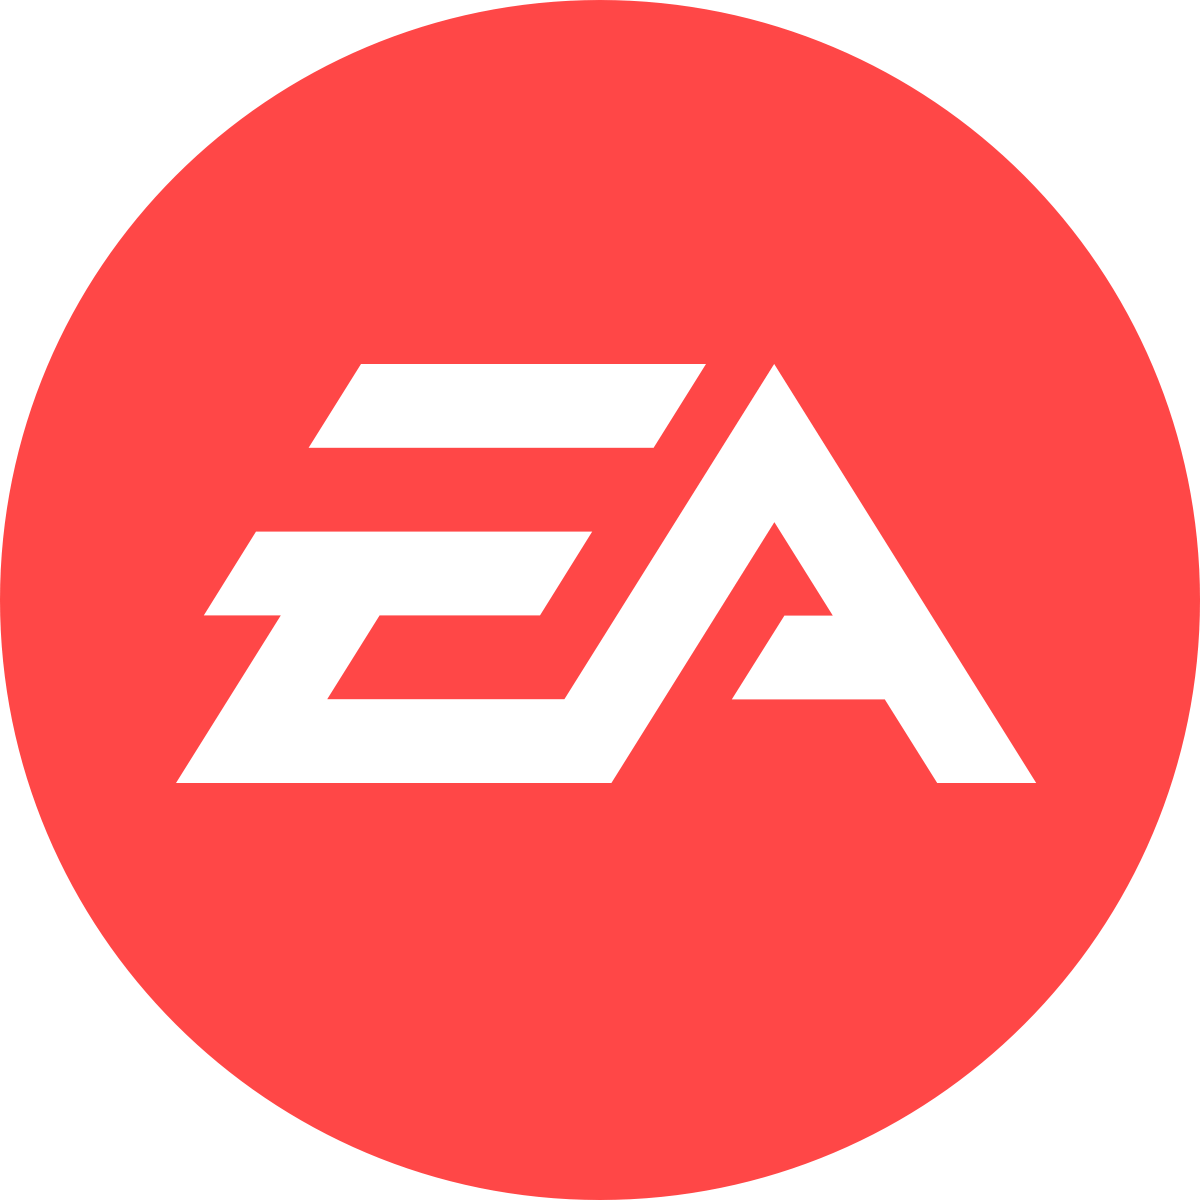 EA made a mistake ignoring the warnings